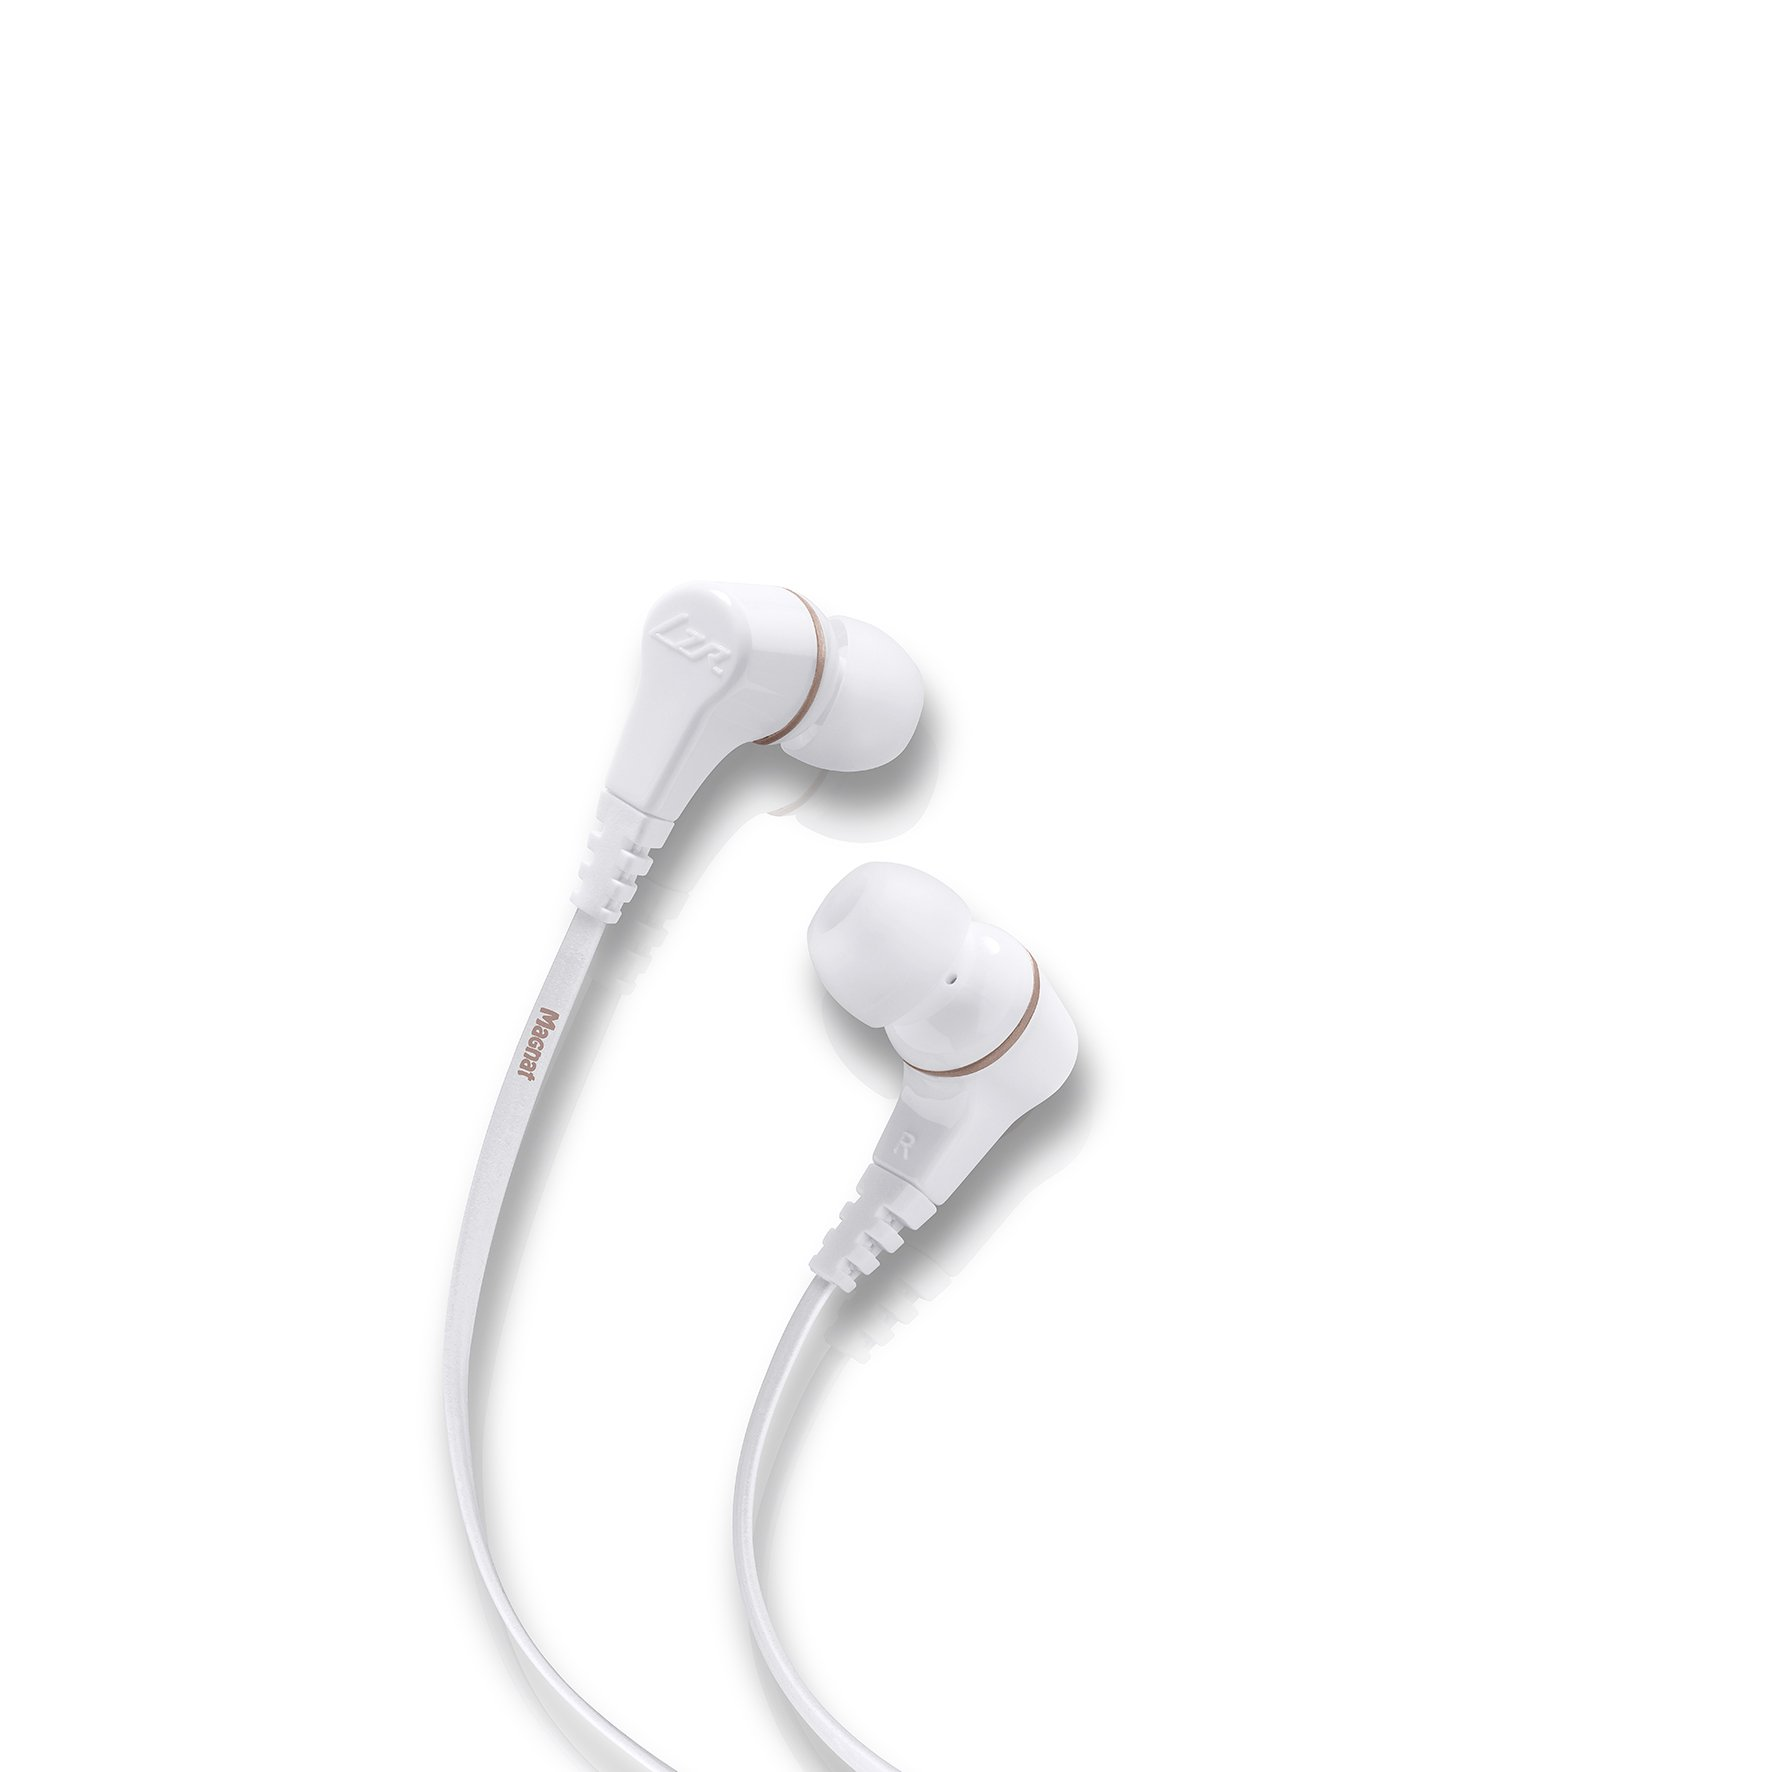 Magnat LZR 180554 340 High Performance Auricolari In-Ear Bianco/rame